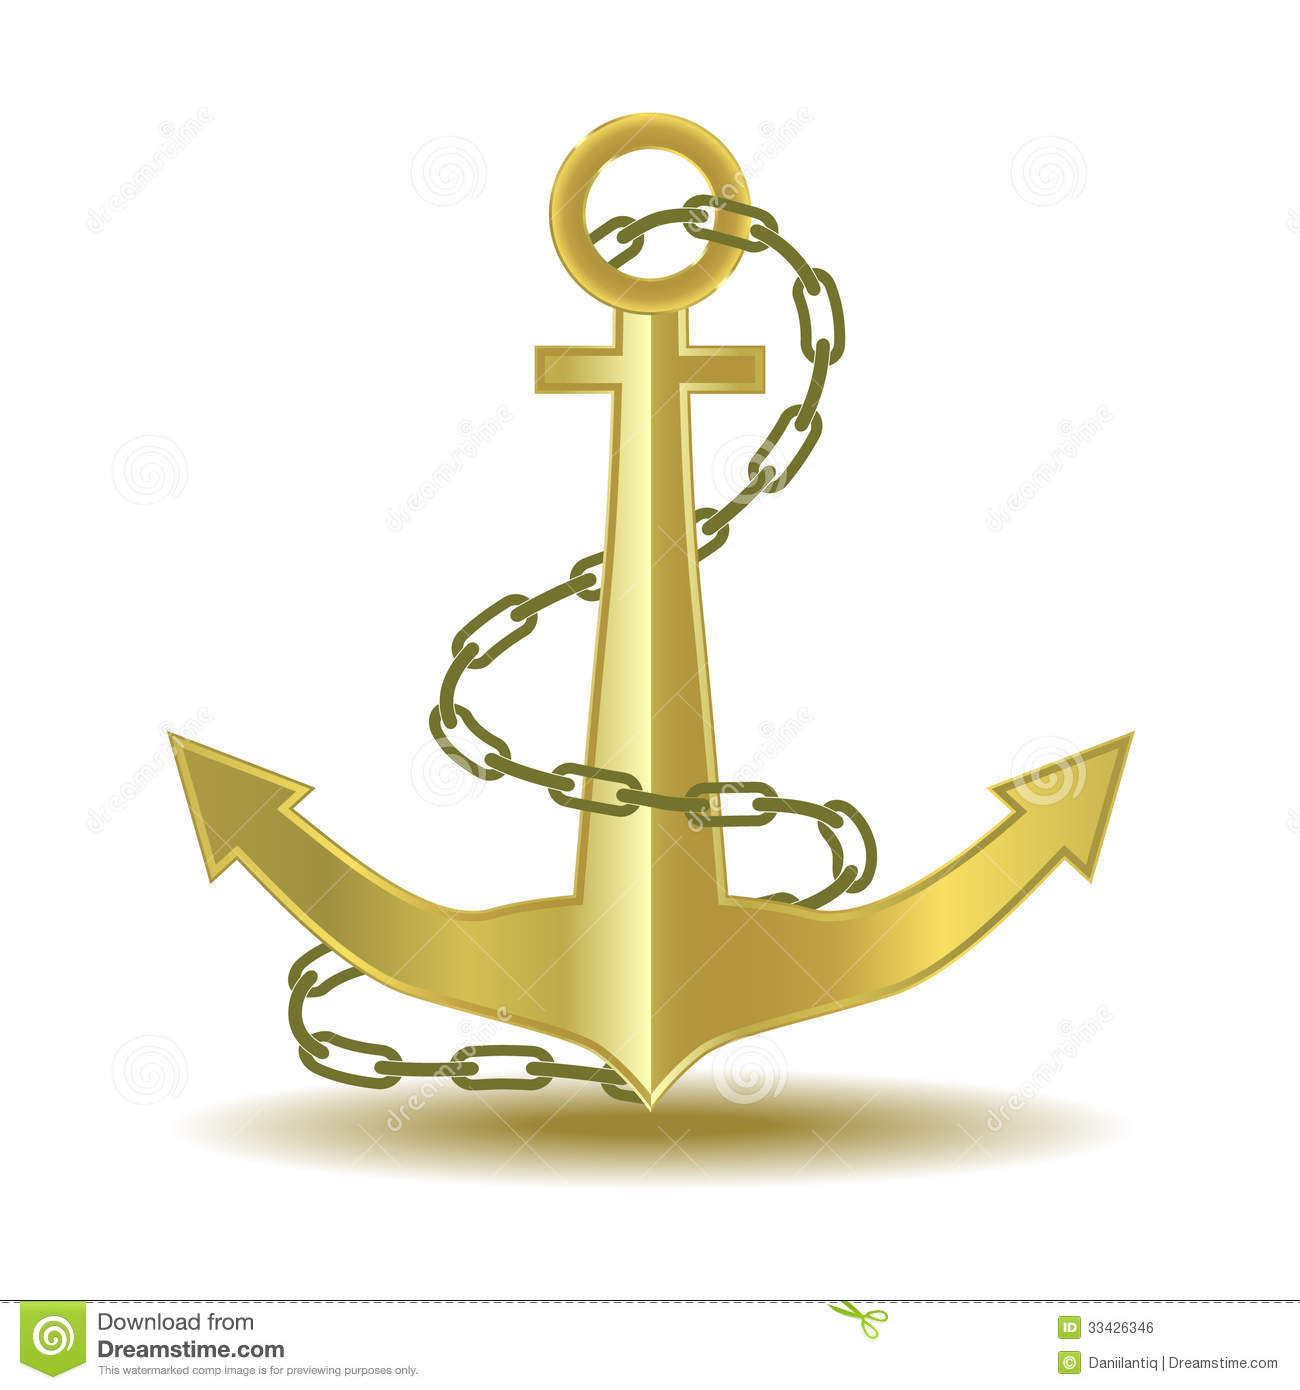 how to add chain to anchor